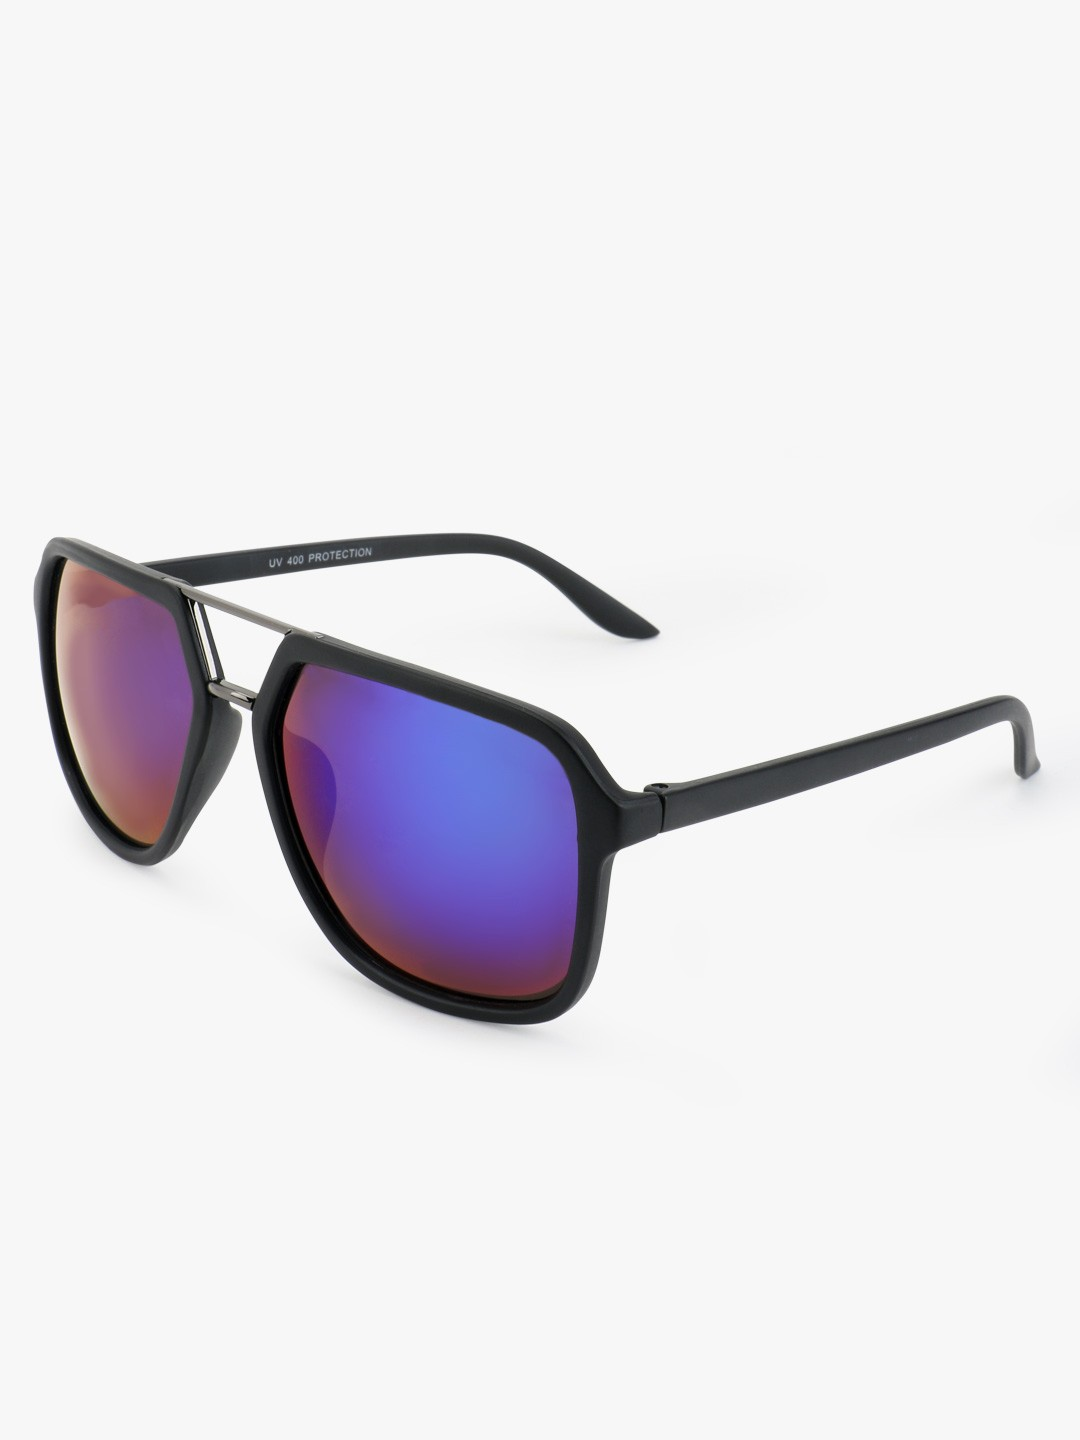 Kindred Blue Tinted Lens Retro Sunglasses 1